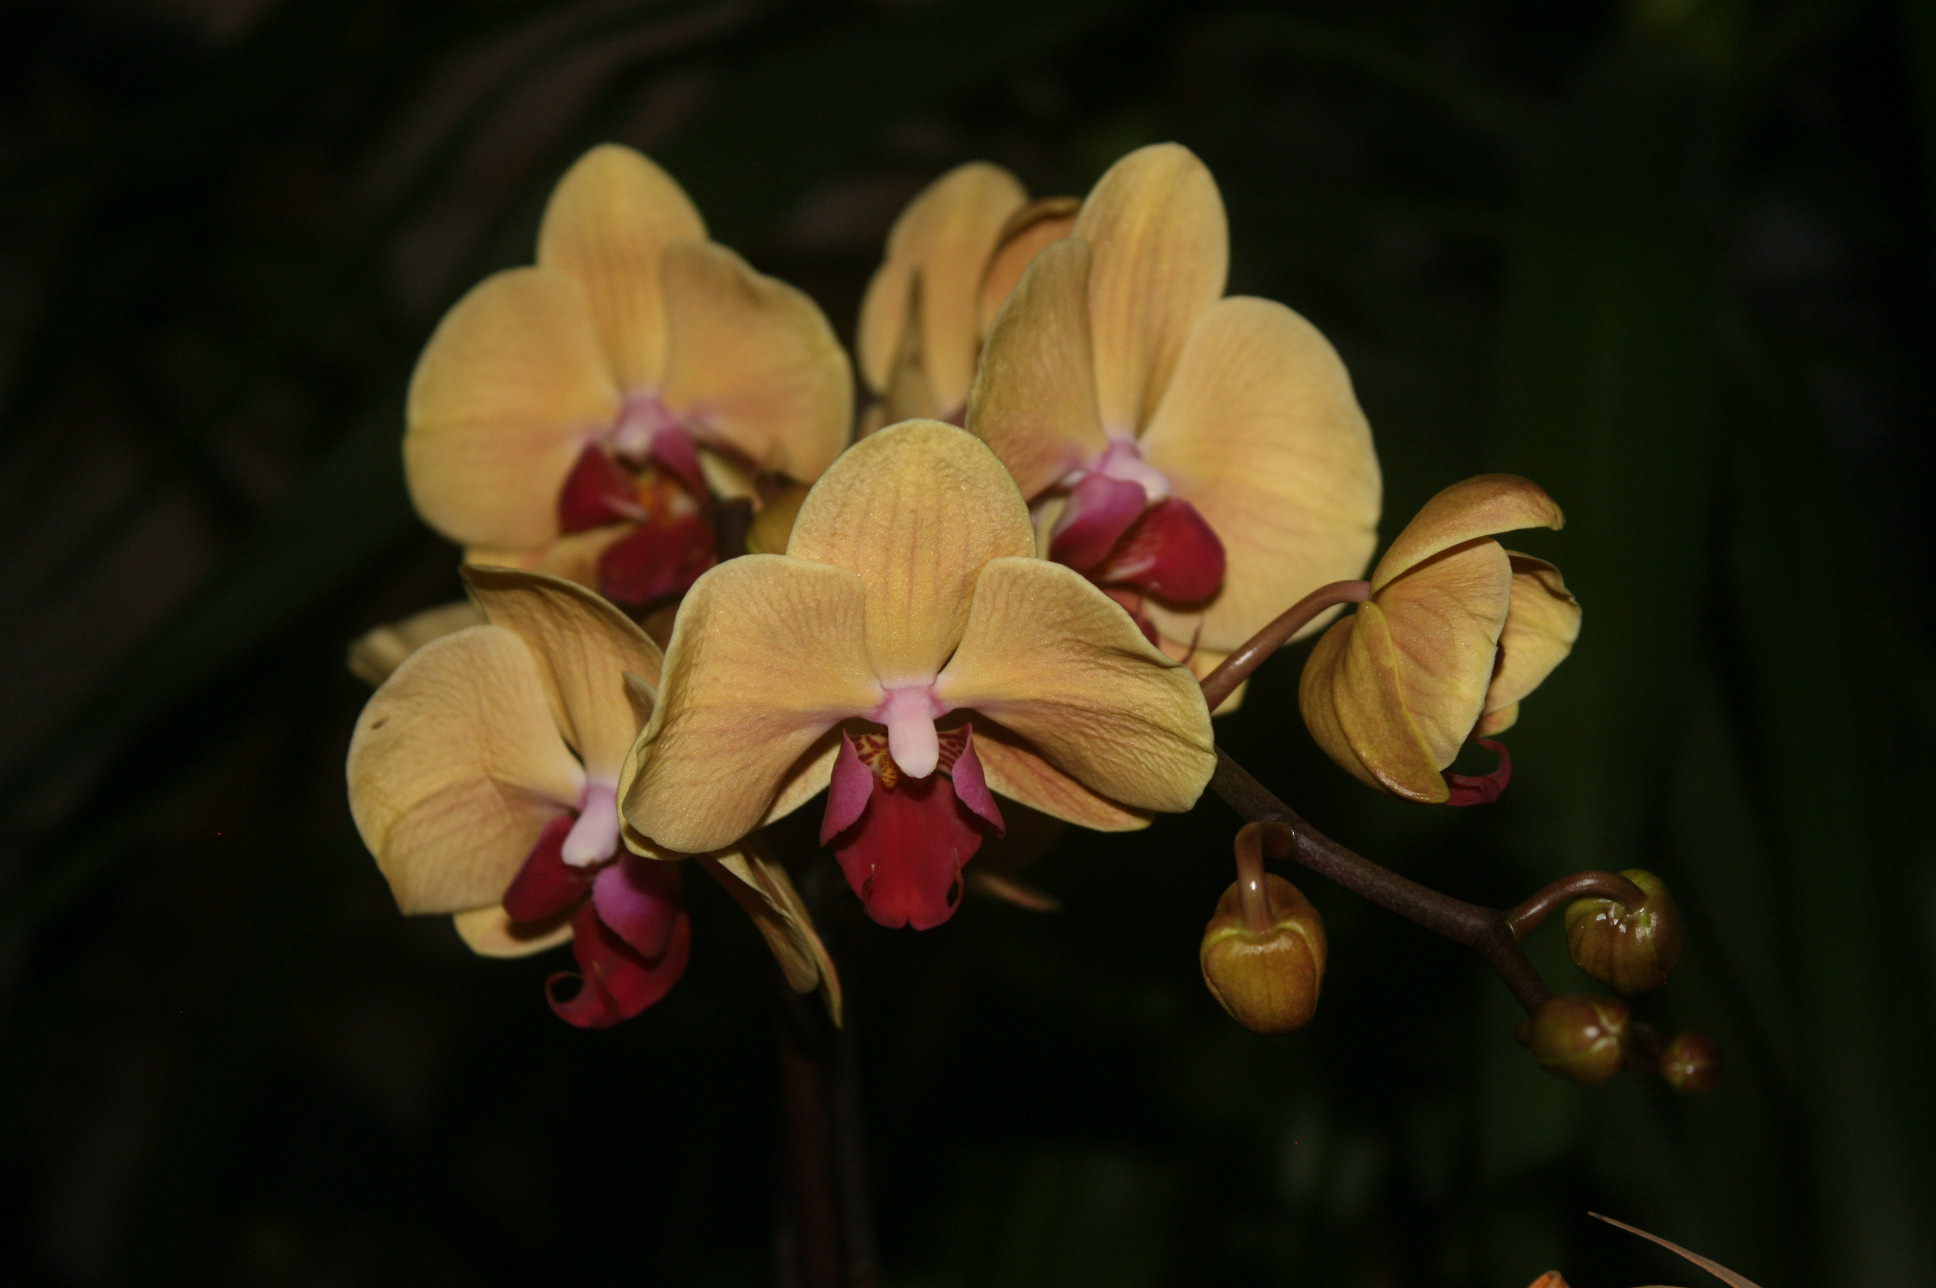 Orchid flower Image